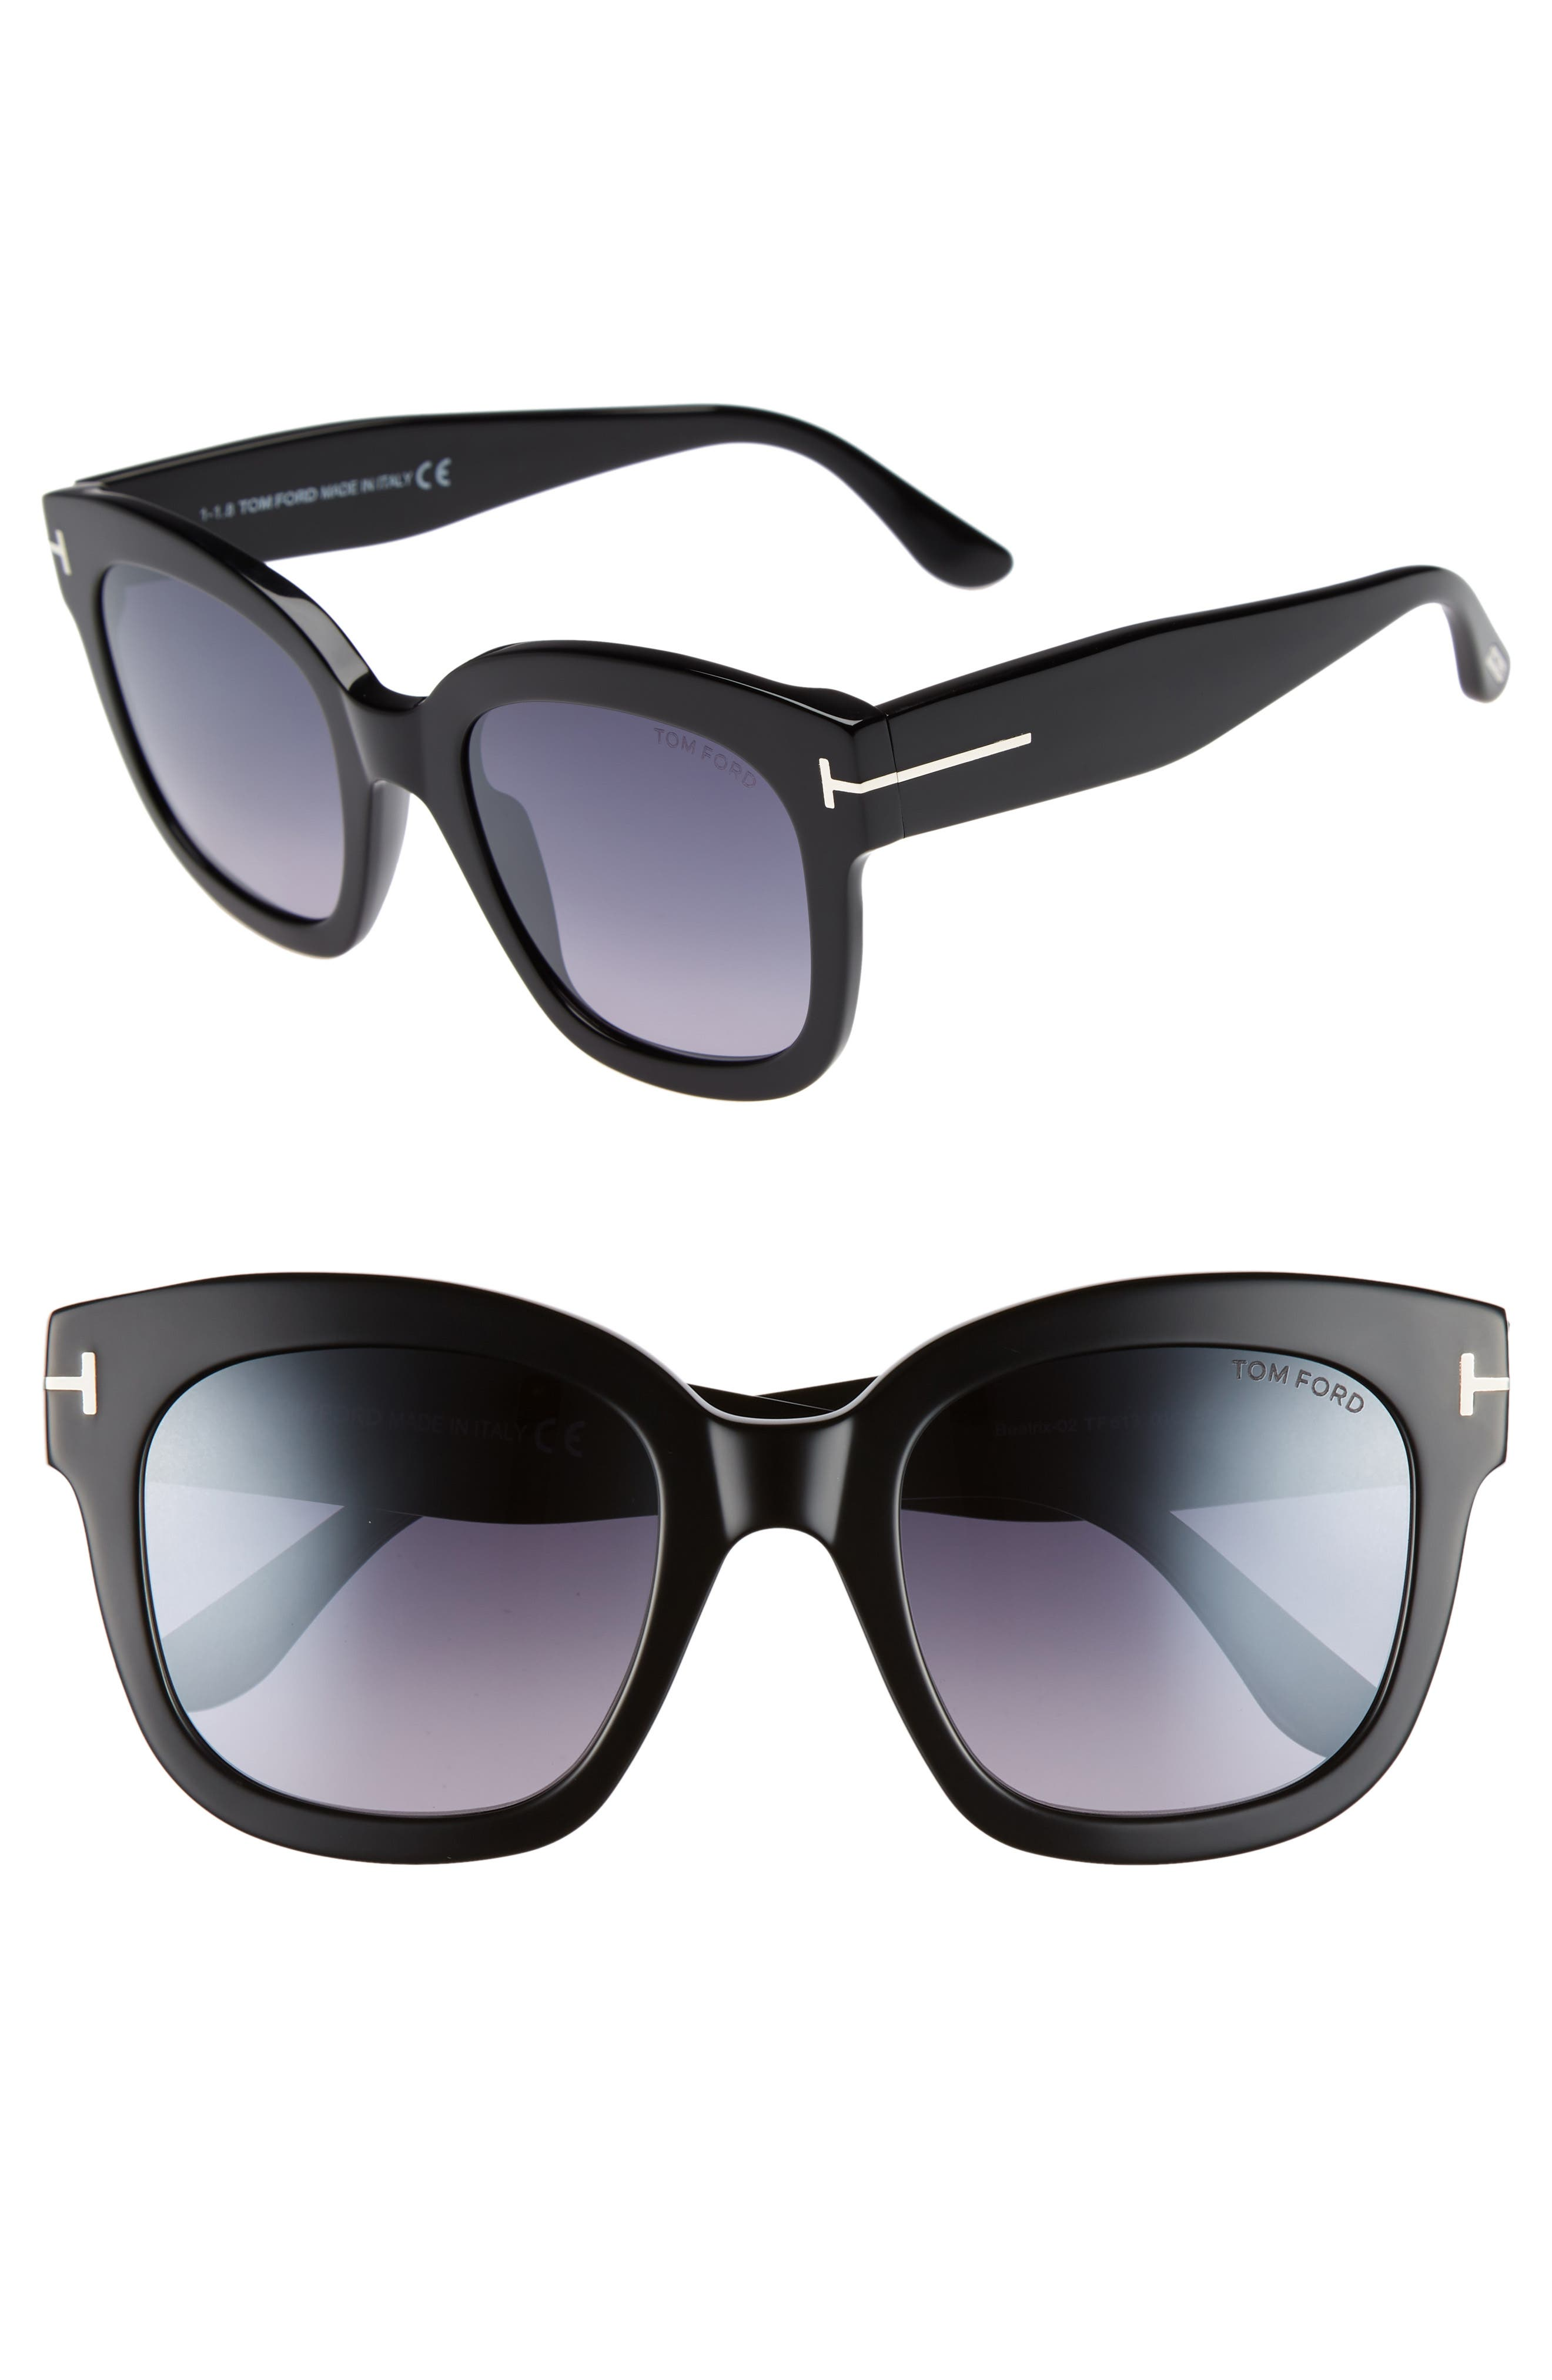 Beatrix 52mm Sunglasses,                         Main,                         color, SHINY BLACK/ SMOKE MIRROR